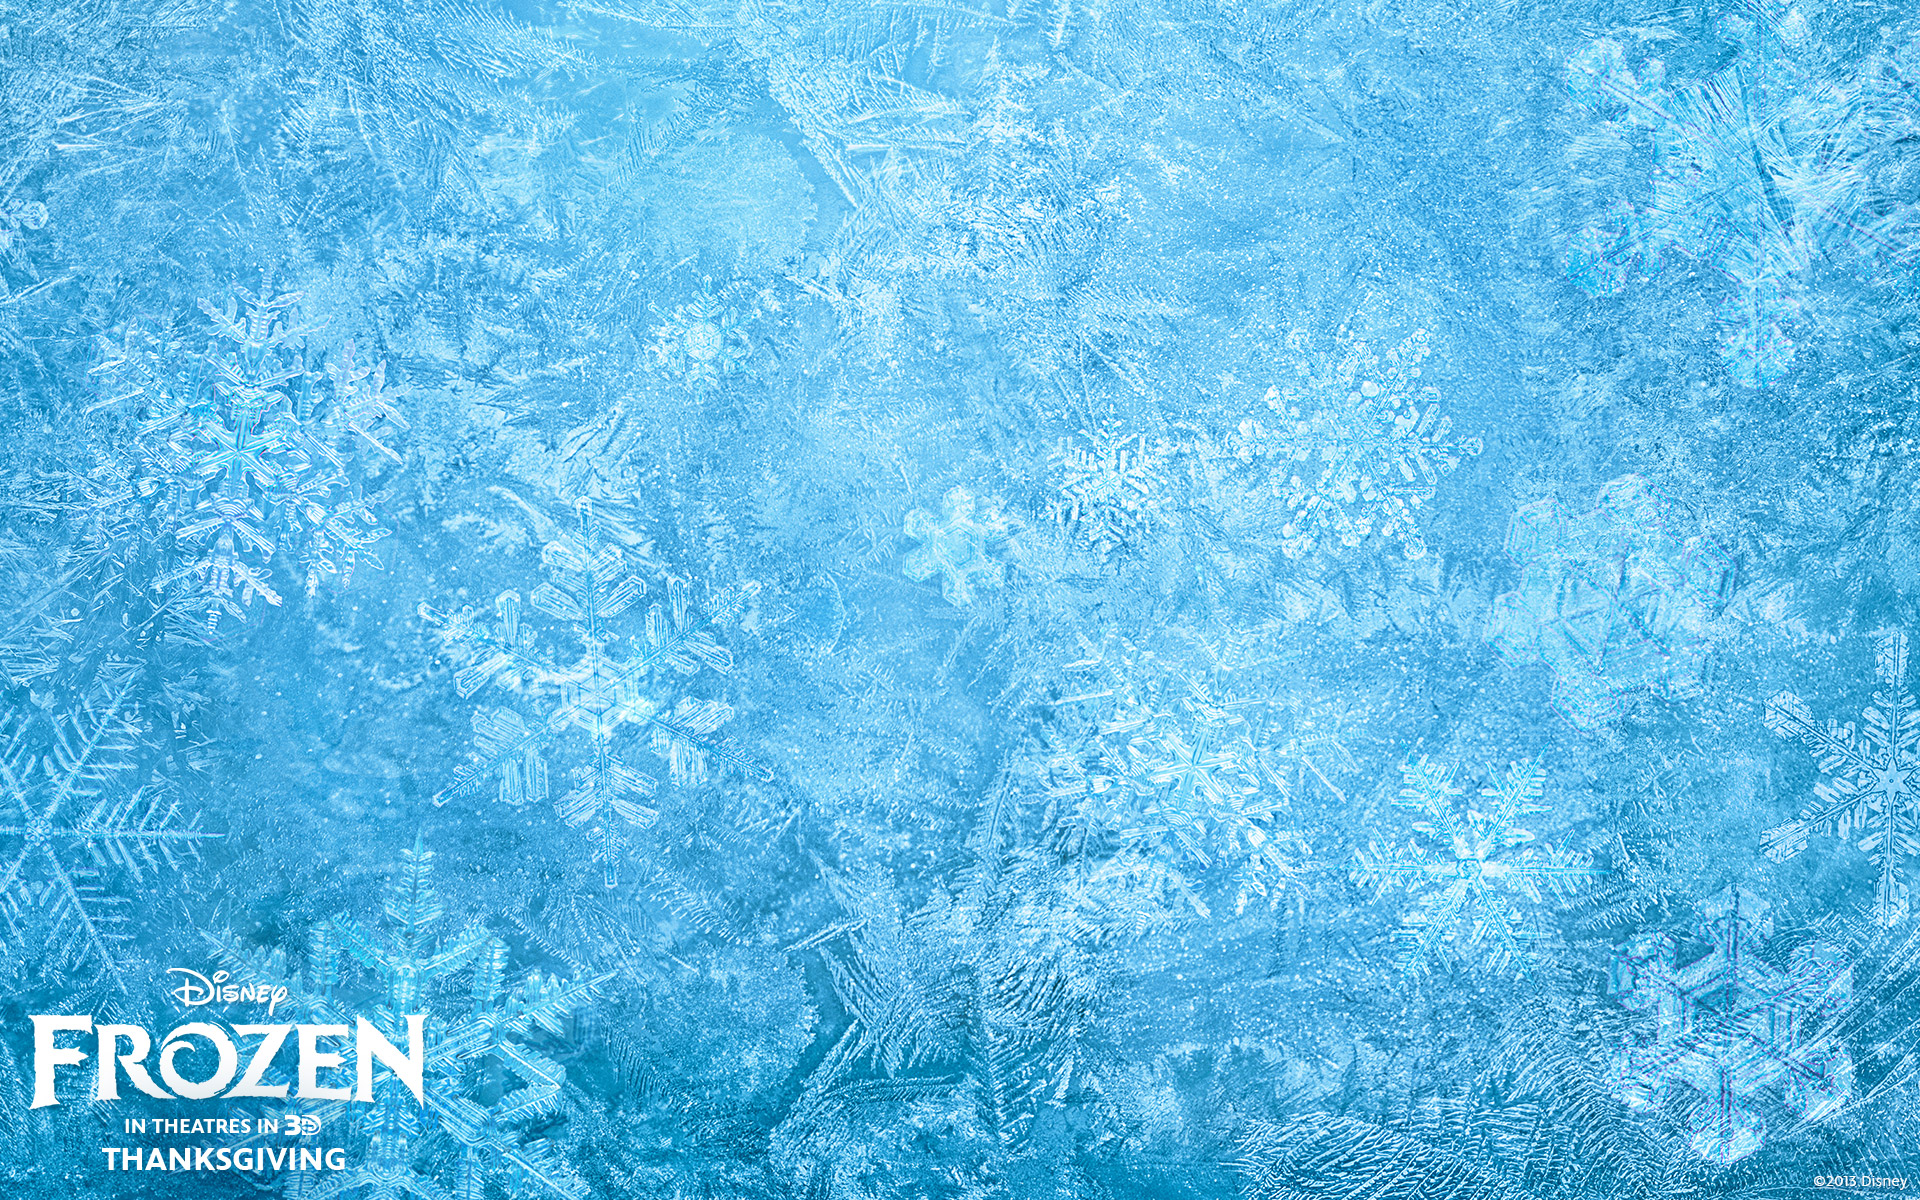 Ice Background From Disney's Frozen Desktop Wallpaper